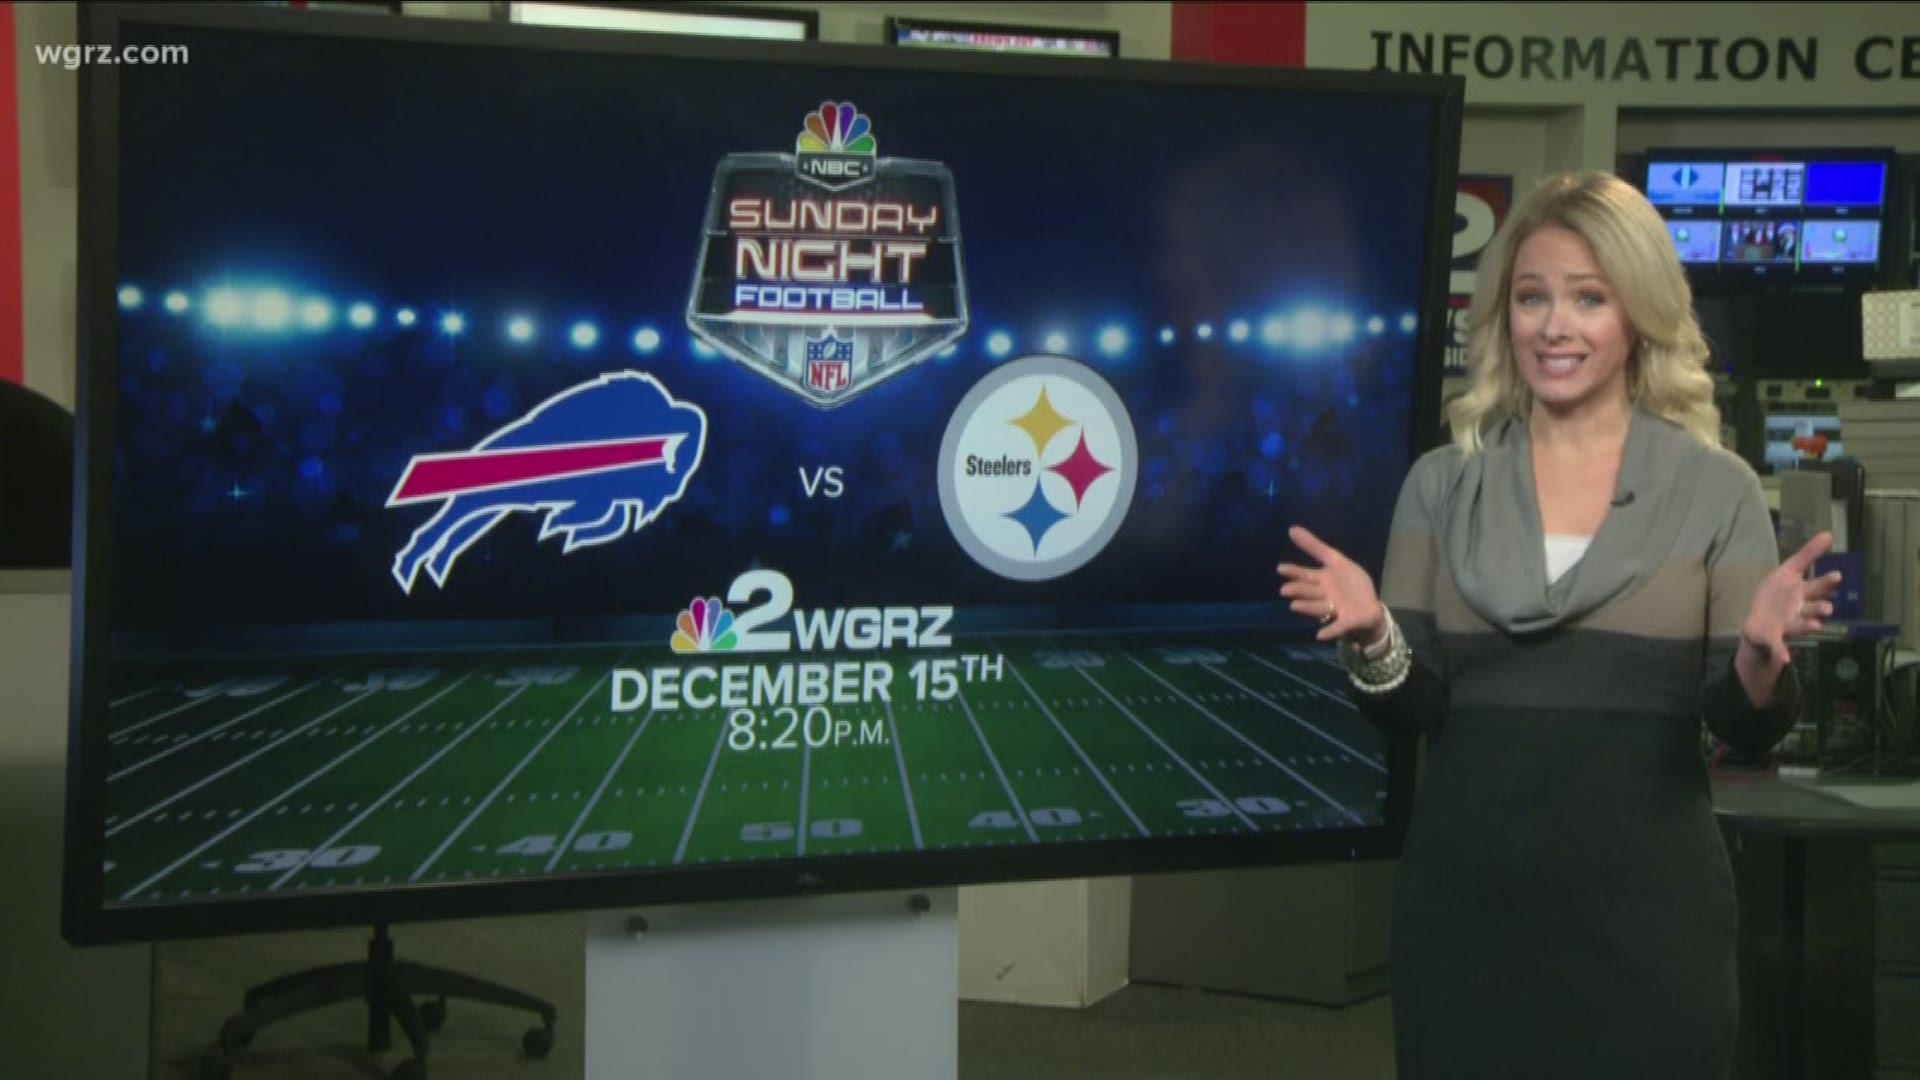 Bills Week 15 Game Vs Steelers Moved To Prime Time On Channel 2 Wgrz Com